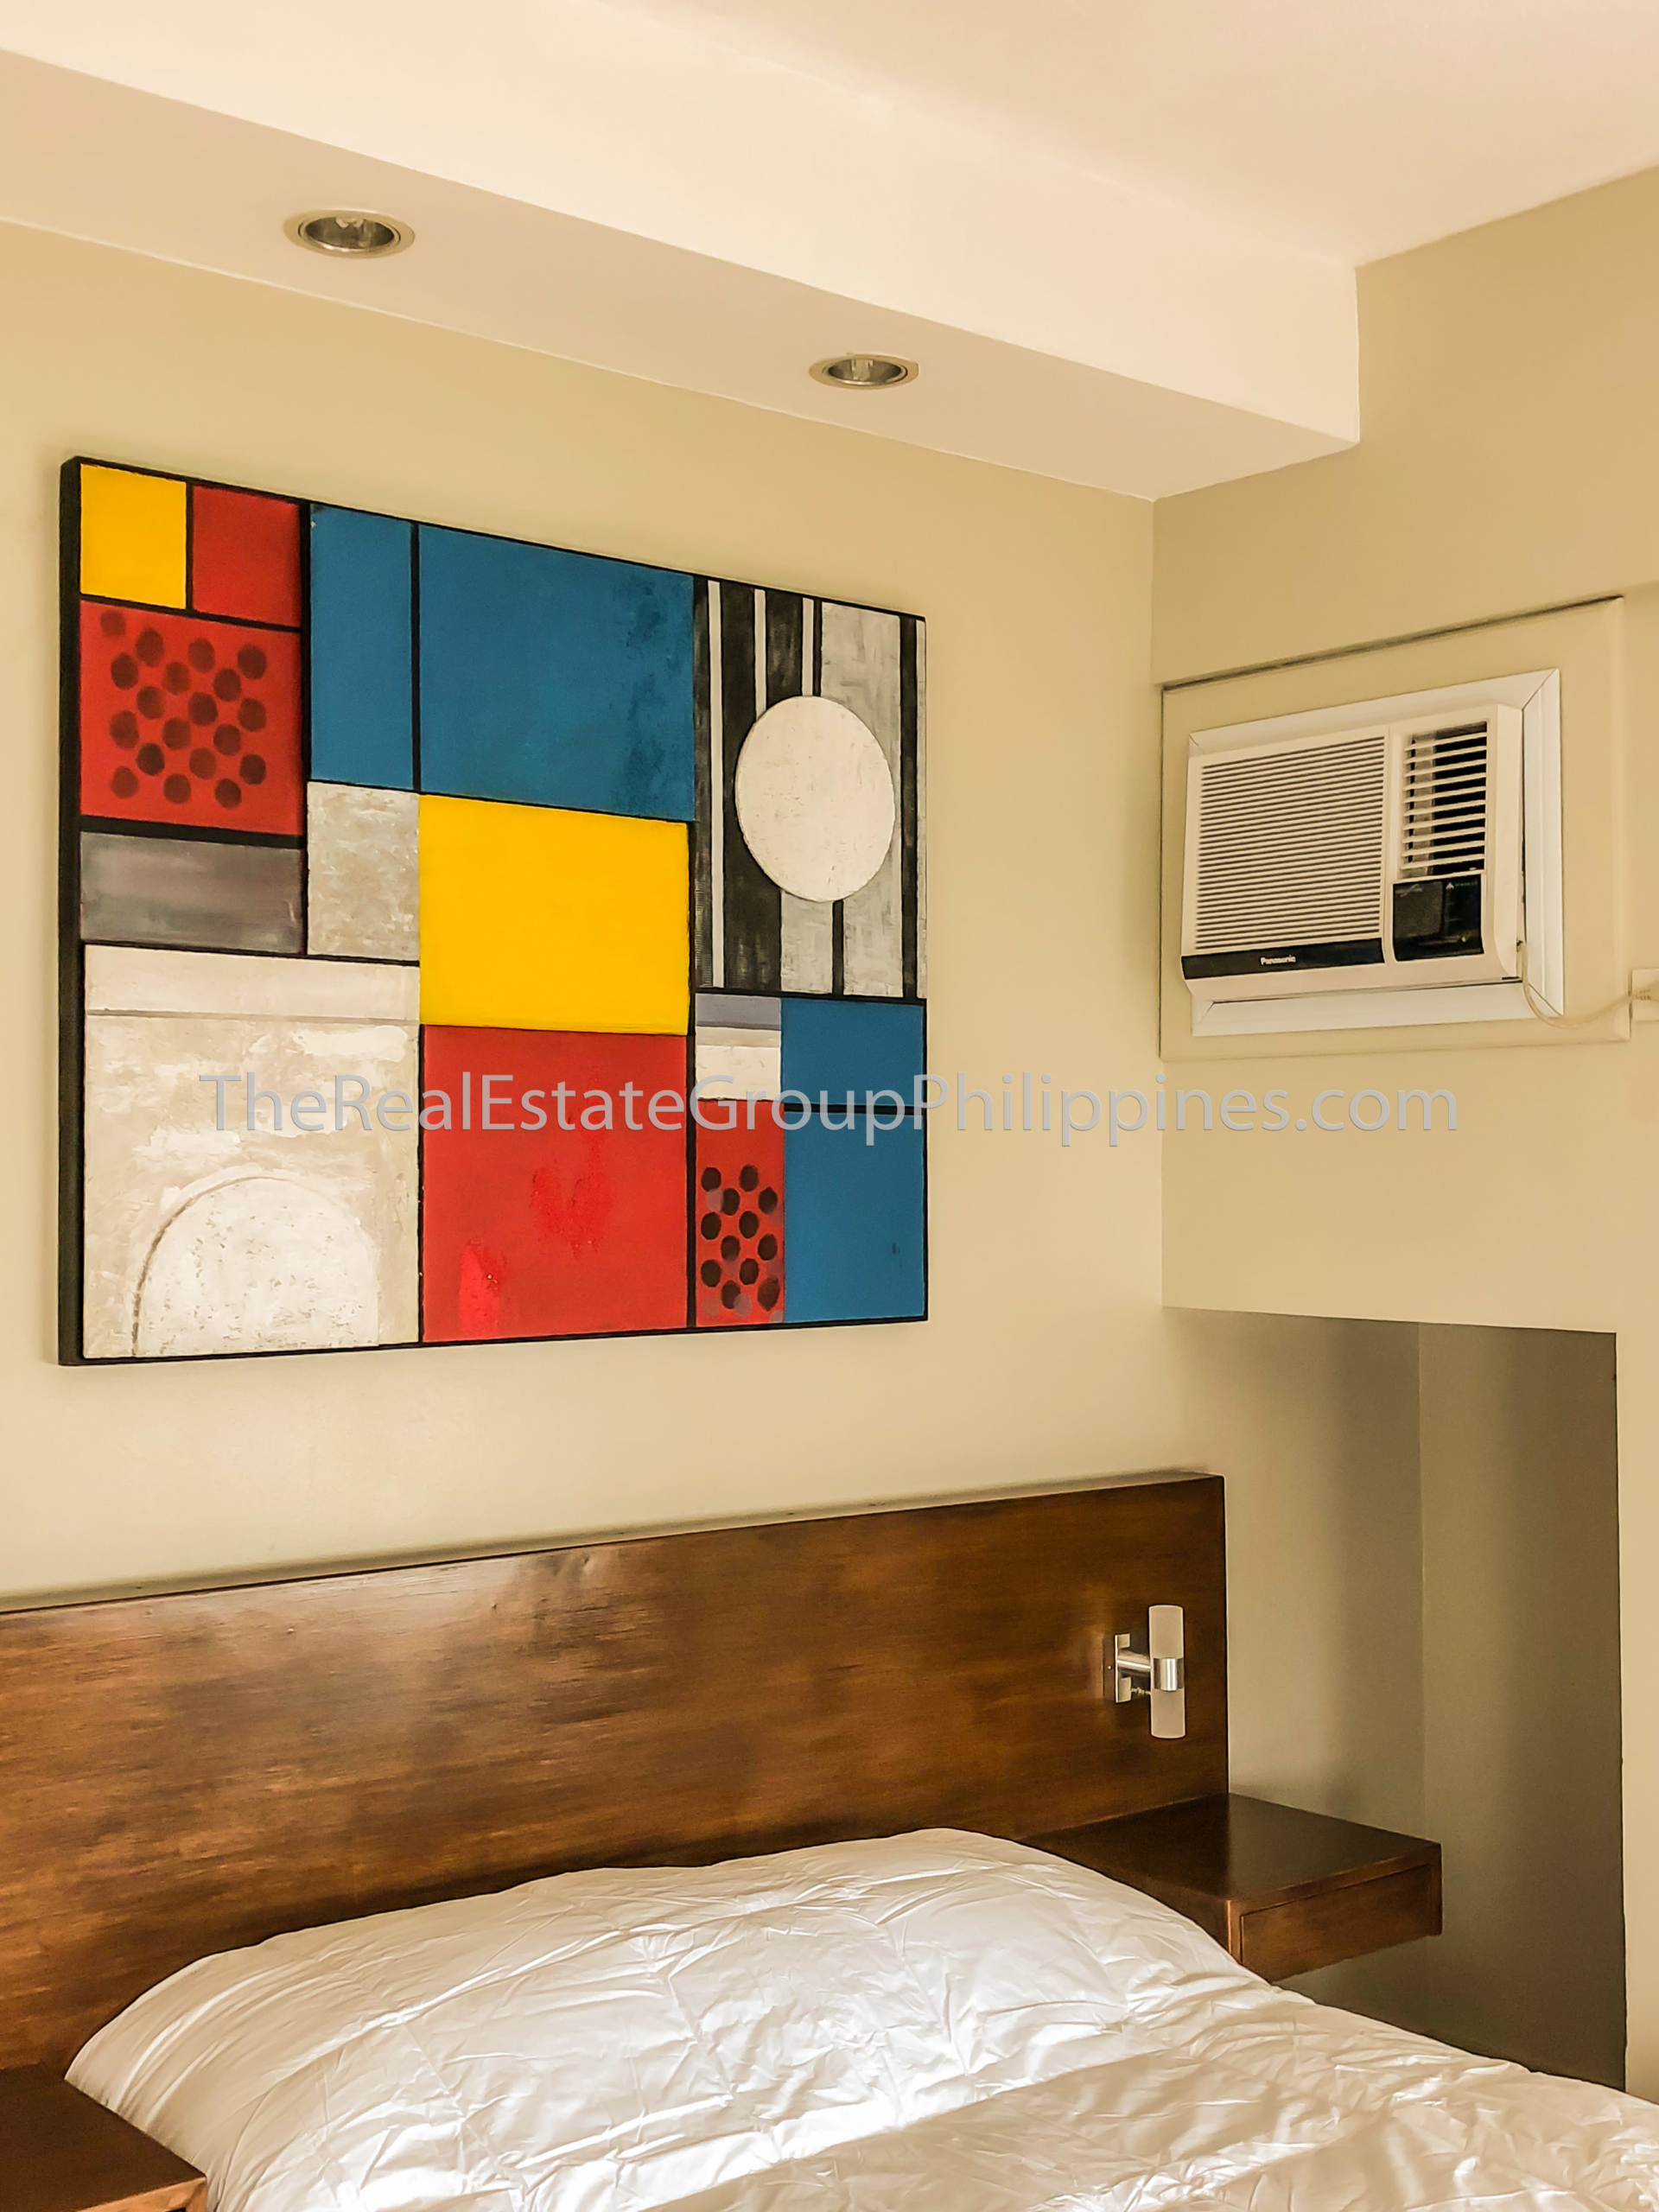 2BR Condo For Rent Lease, One Legazpi Park, Makati City (8 of 8)